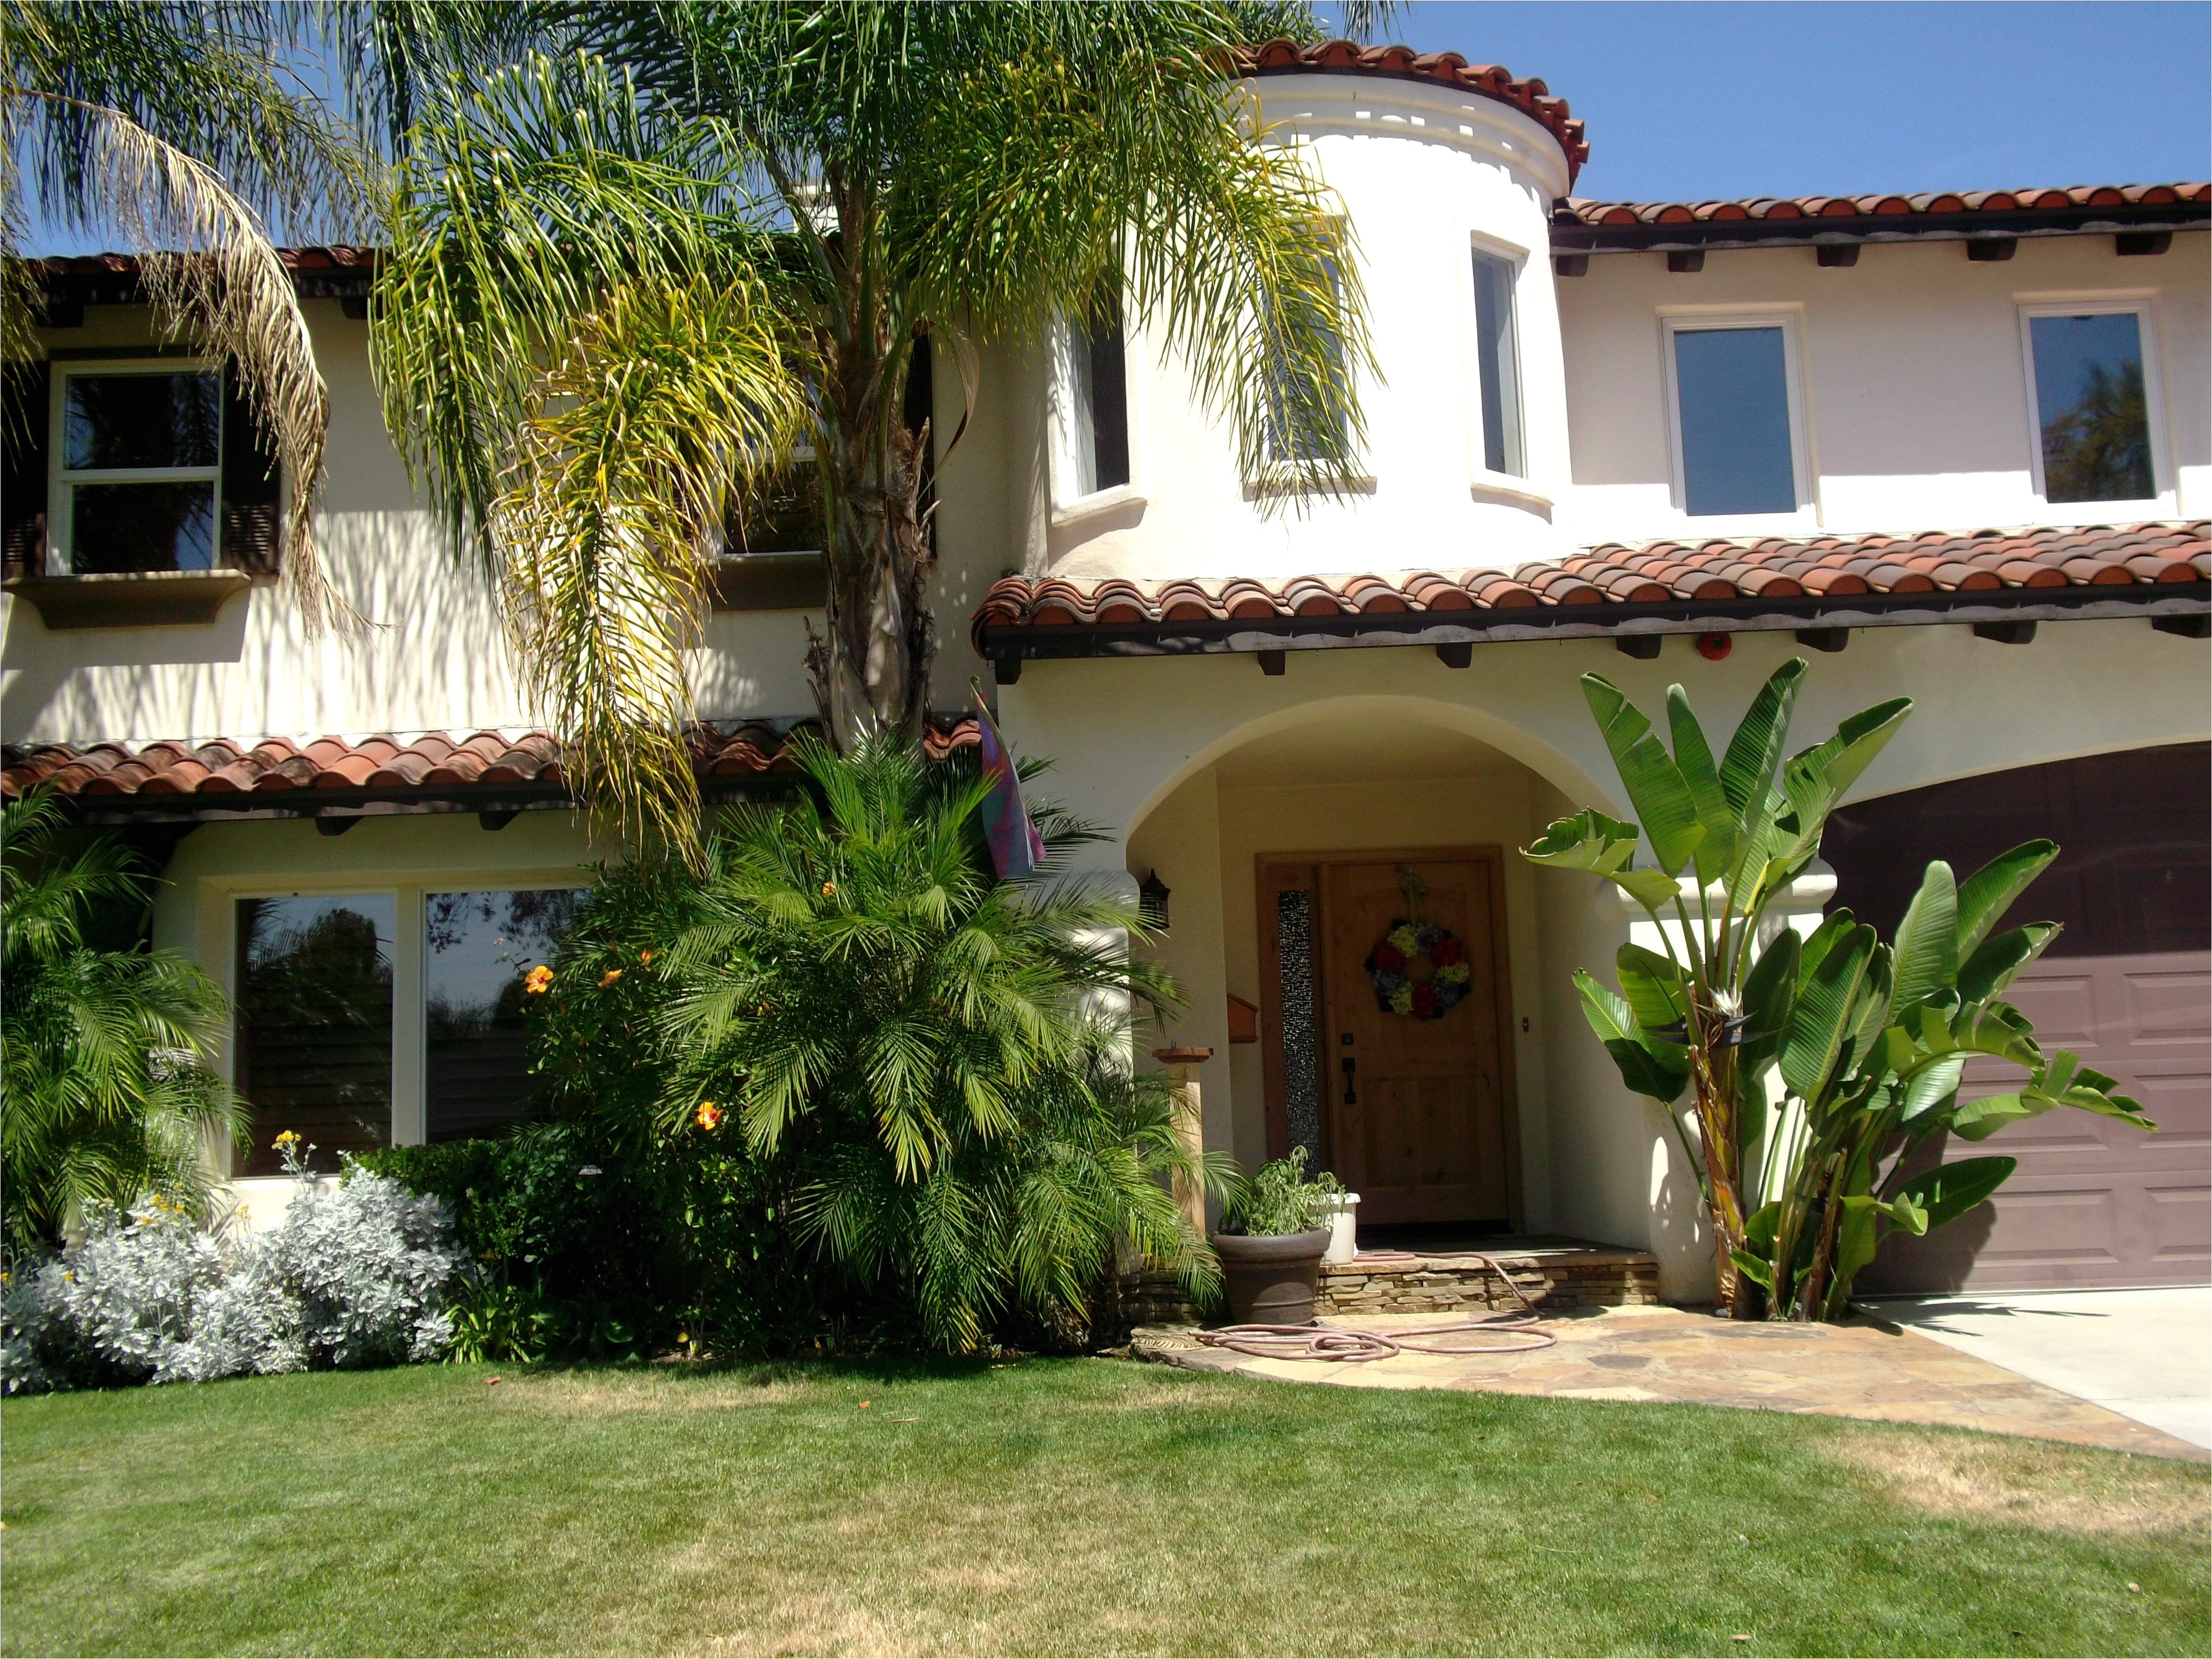 california house styles living with flair casual chic and comfort